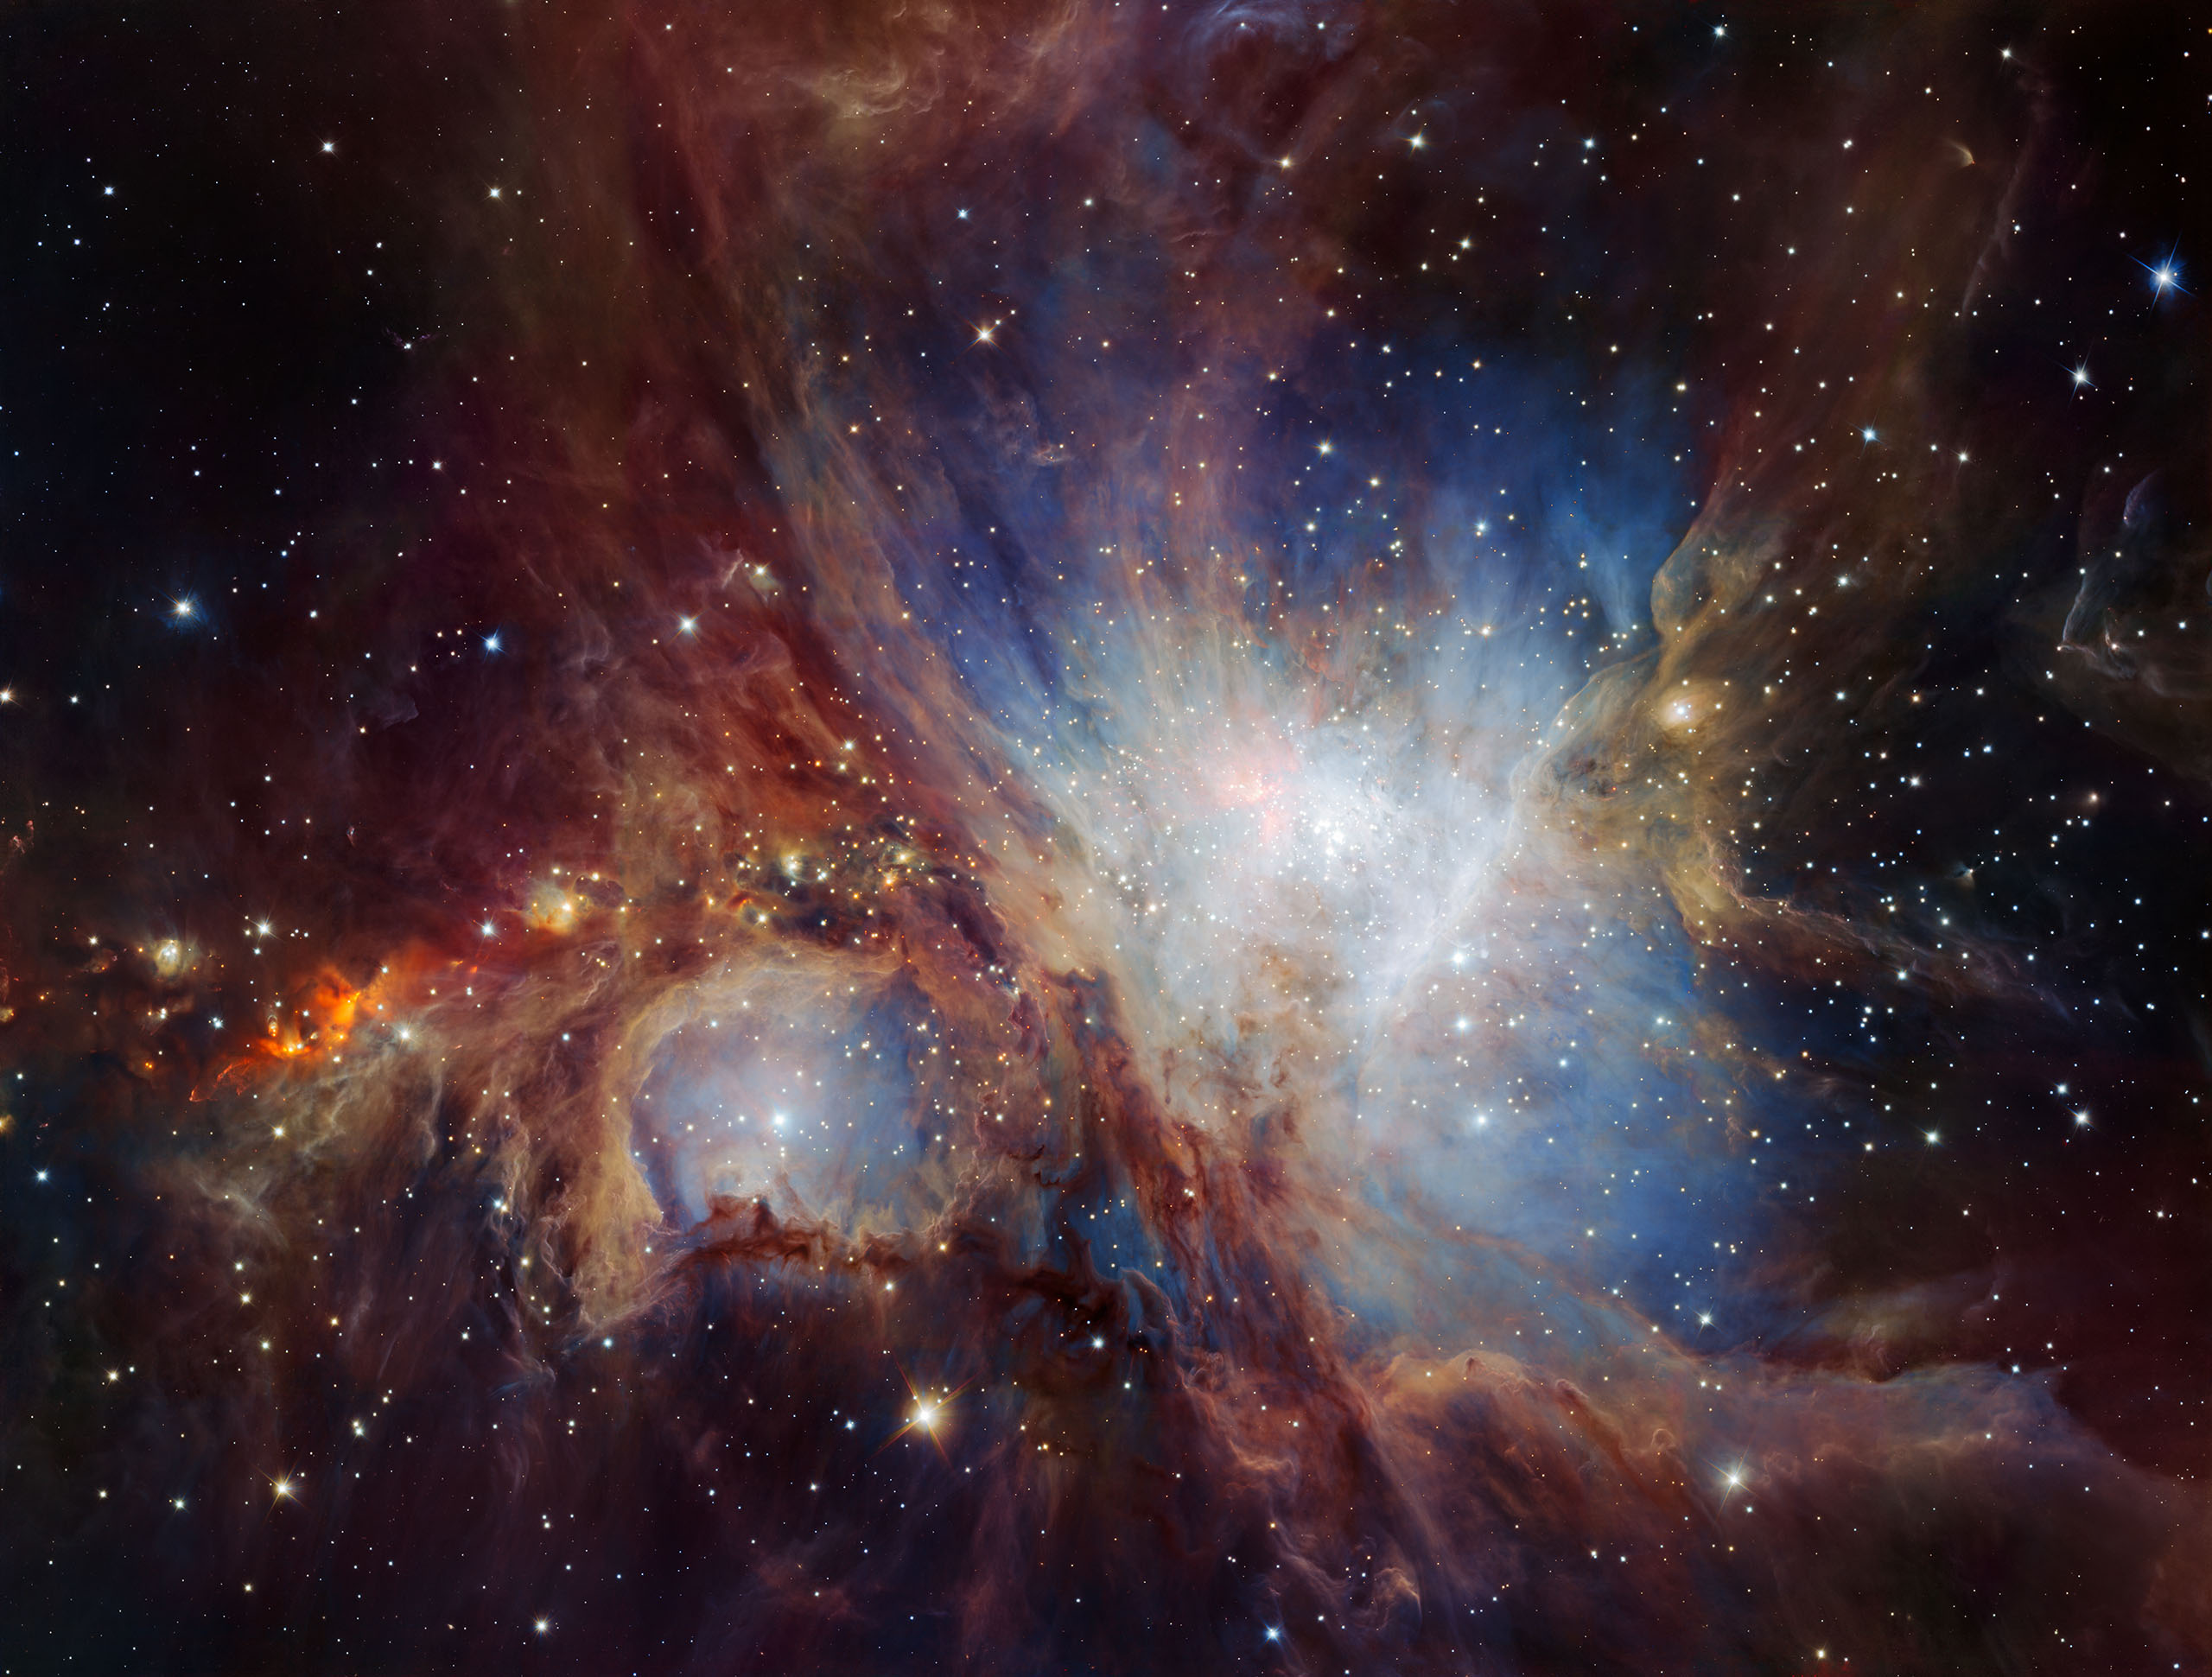 This image of the Orion Nebula star-formation region was obtained from multiple exposures using the HAWK-I infrared camera on ESO's Very Large Telescope in Chile.